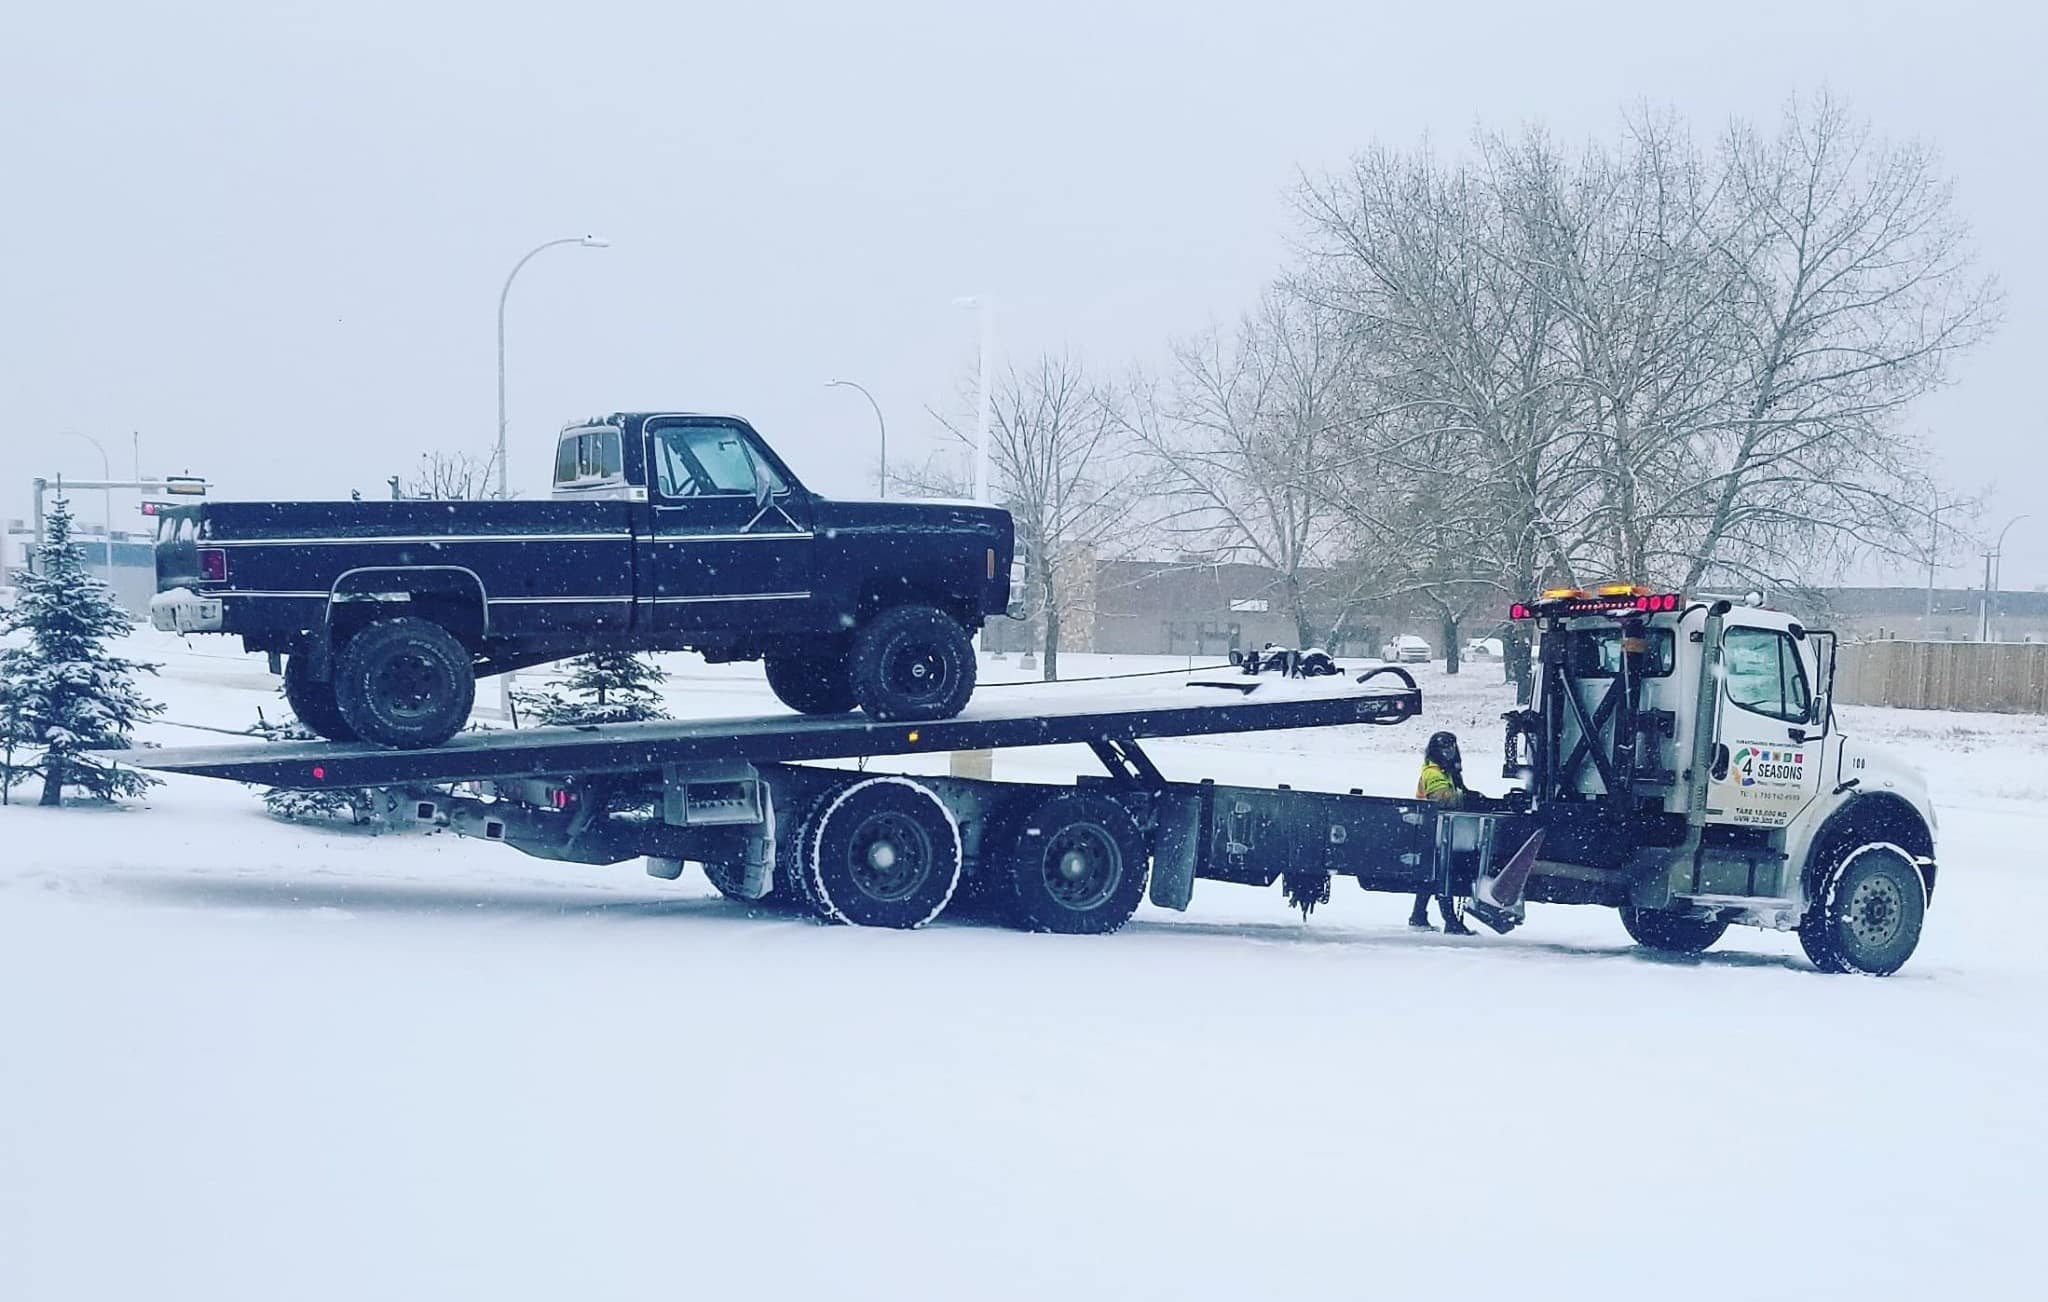 Tow Truck - 4 Seasons Transport & Towing